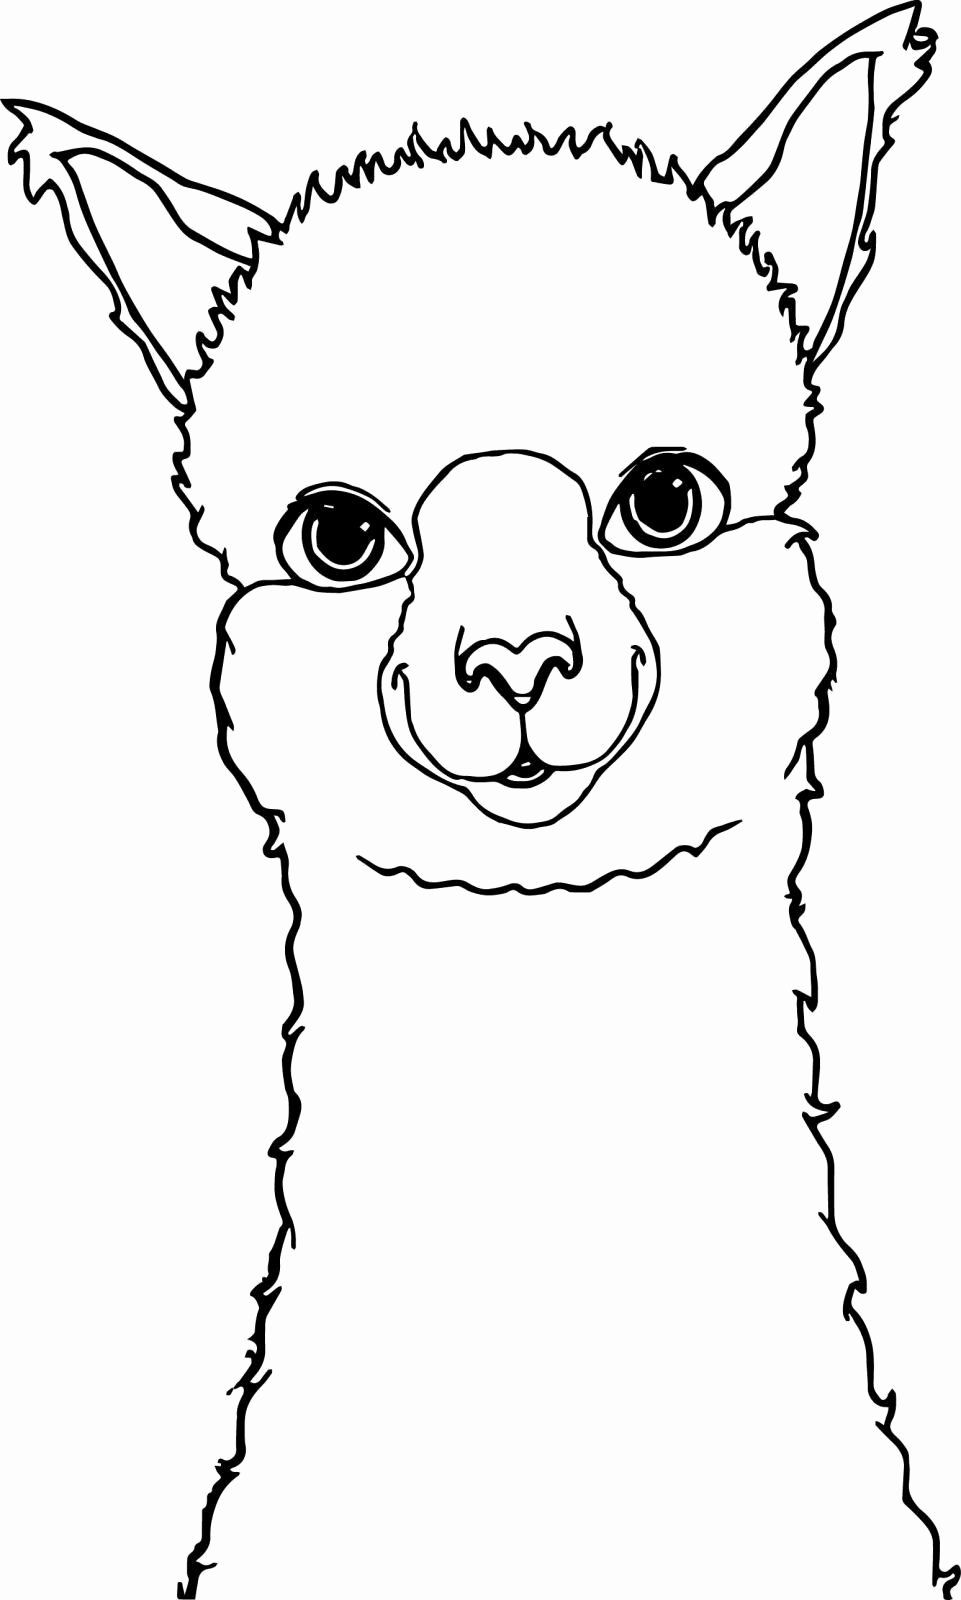 Cat Coloring Pages Online Beautiful Breathtaking Llama Coloring Pages In 2020 Alpaca Drawing Animal Coloring Pages Fox Coloring Page